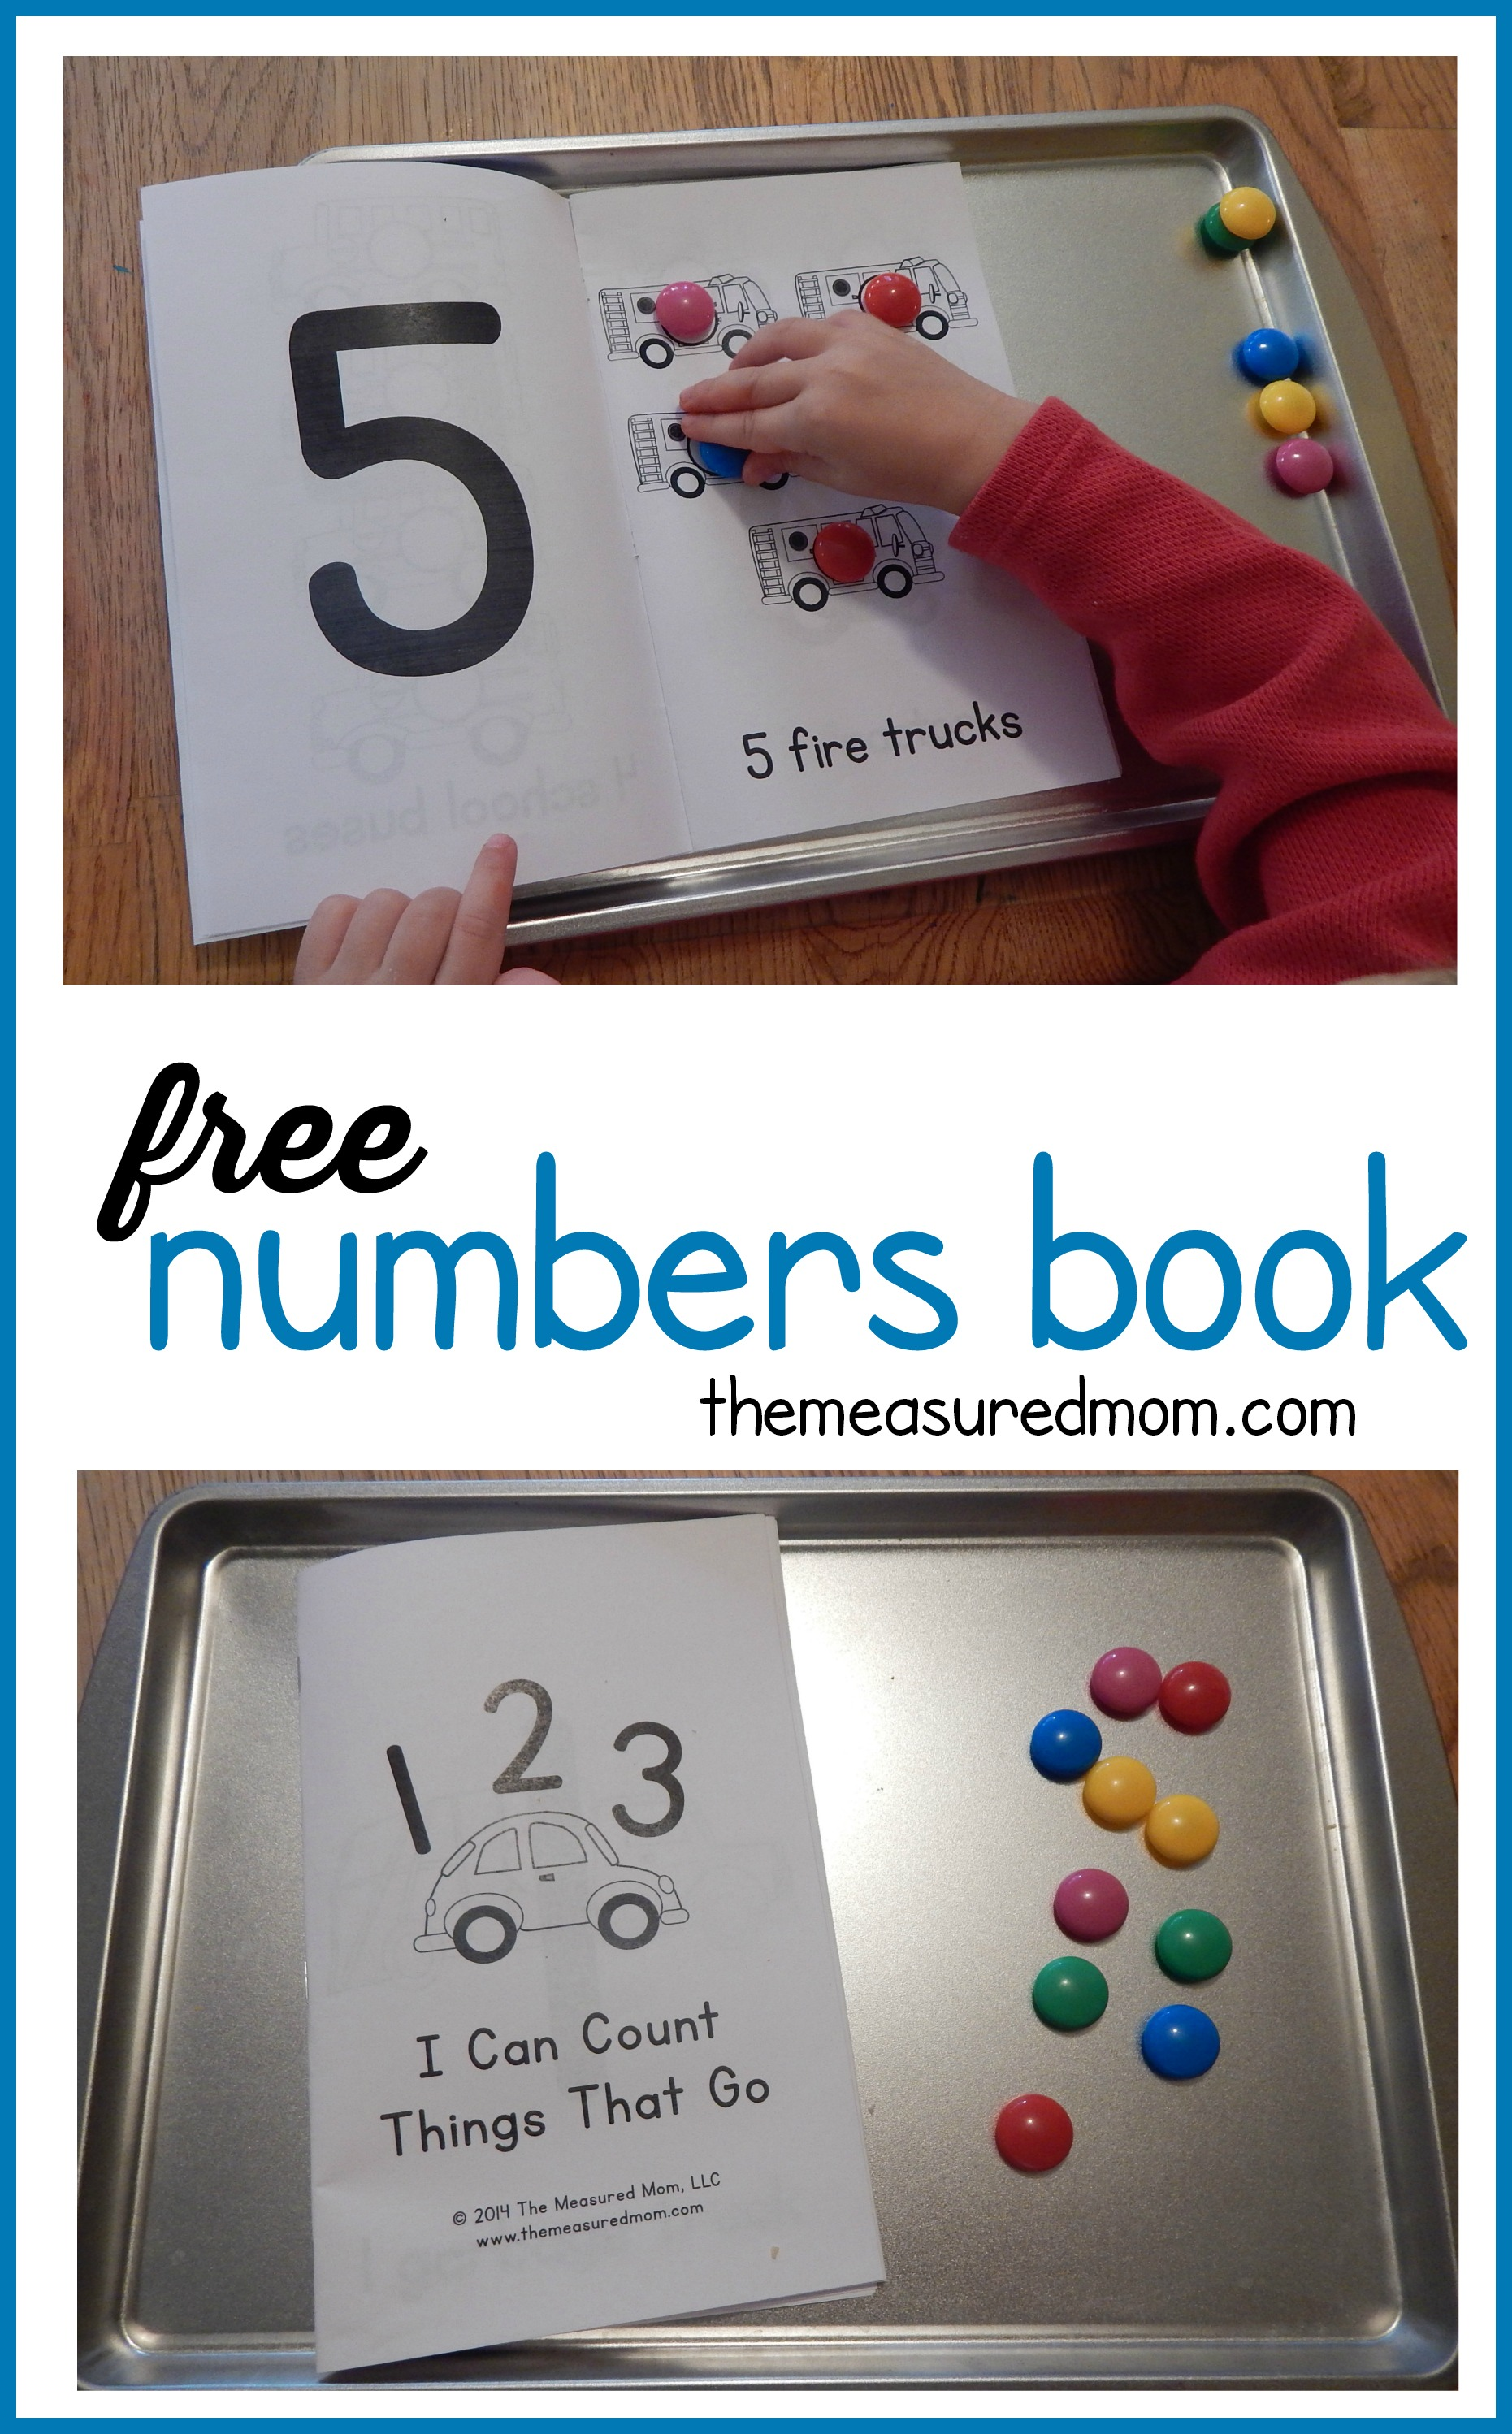 free numbers book for kids ages 2 5 the measured mom